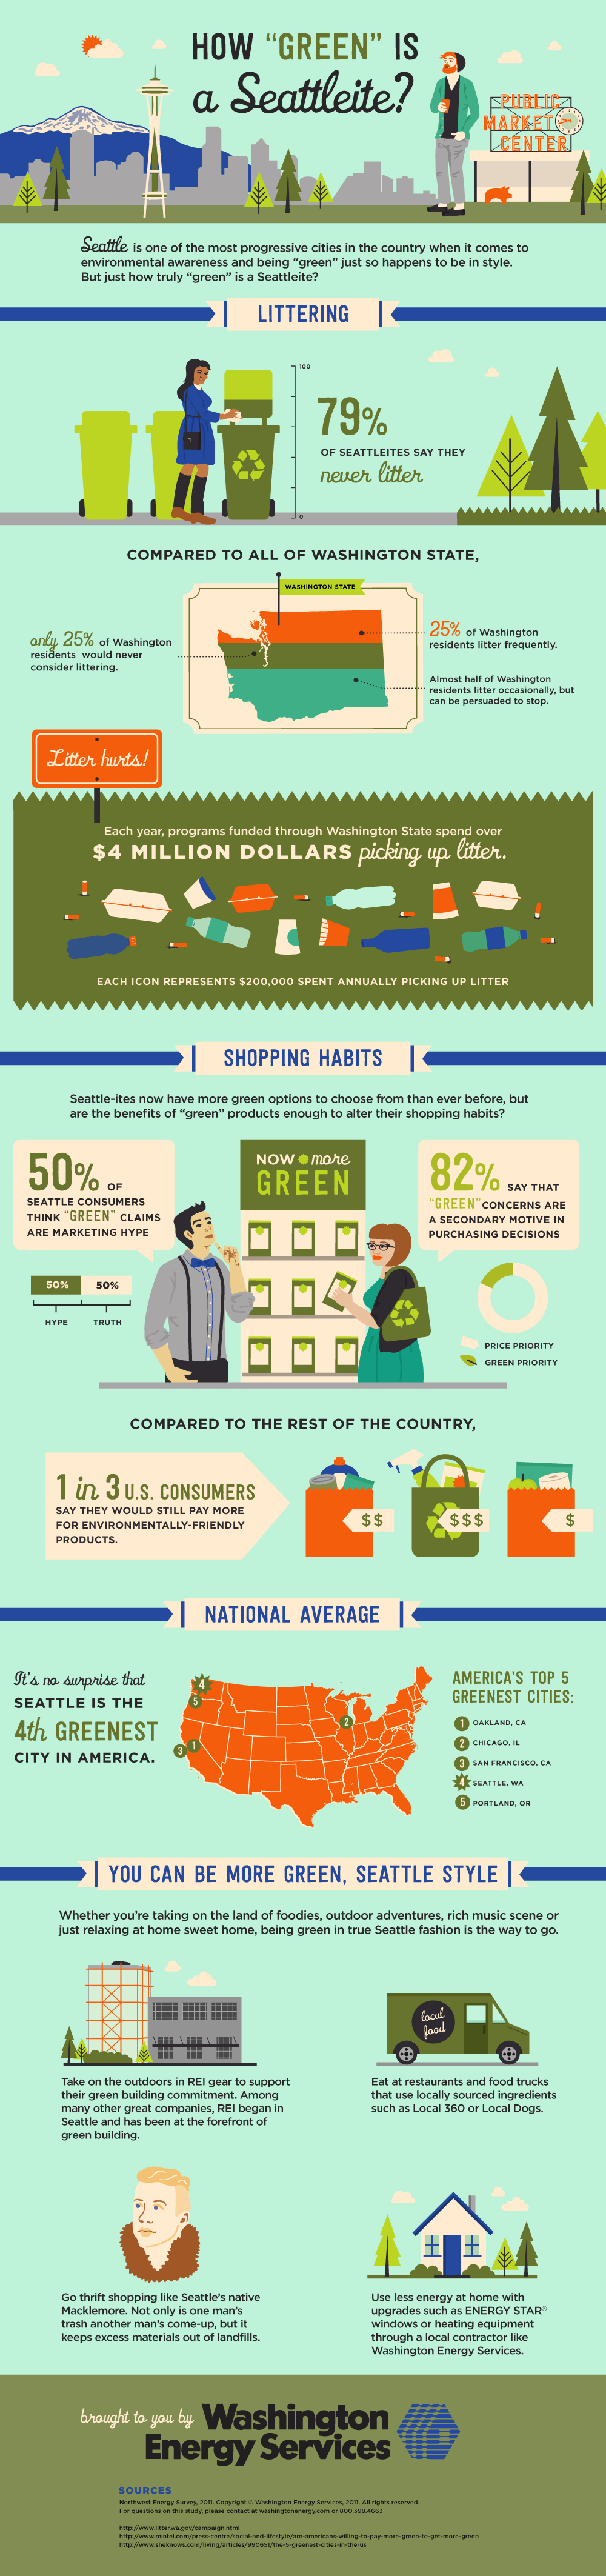 How green is a seattleite infographic?